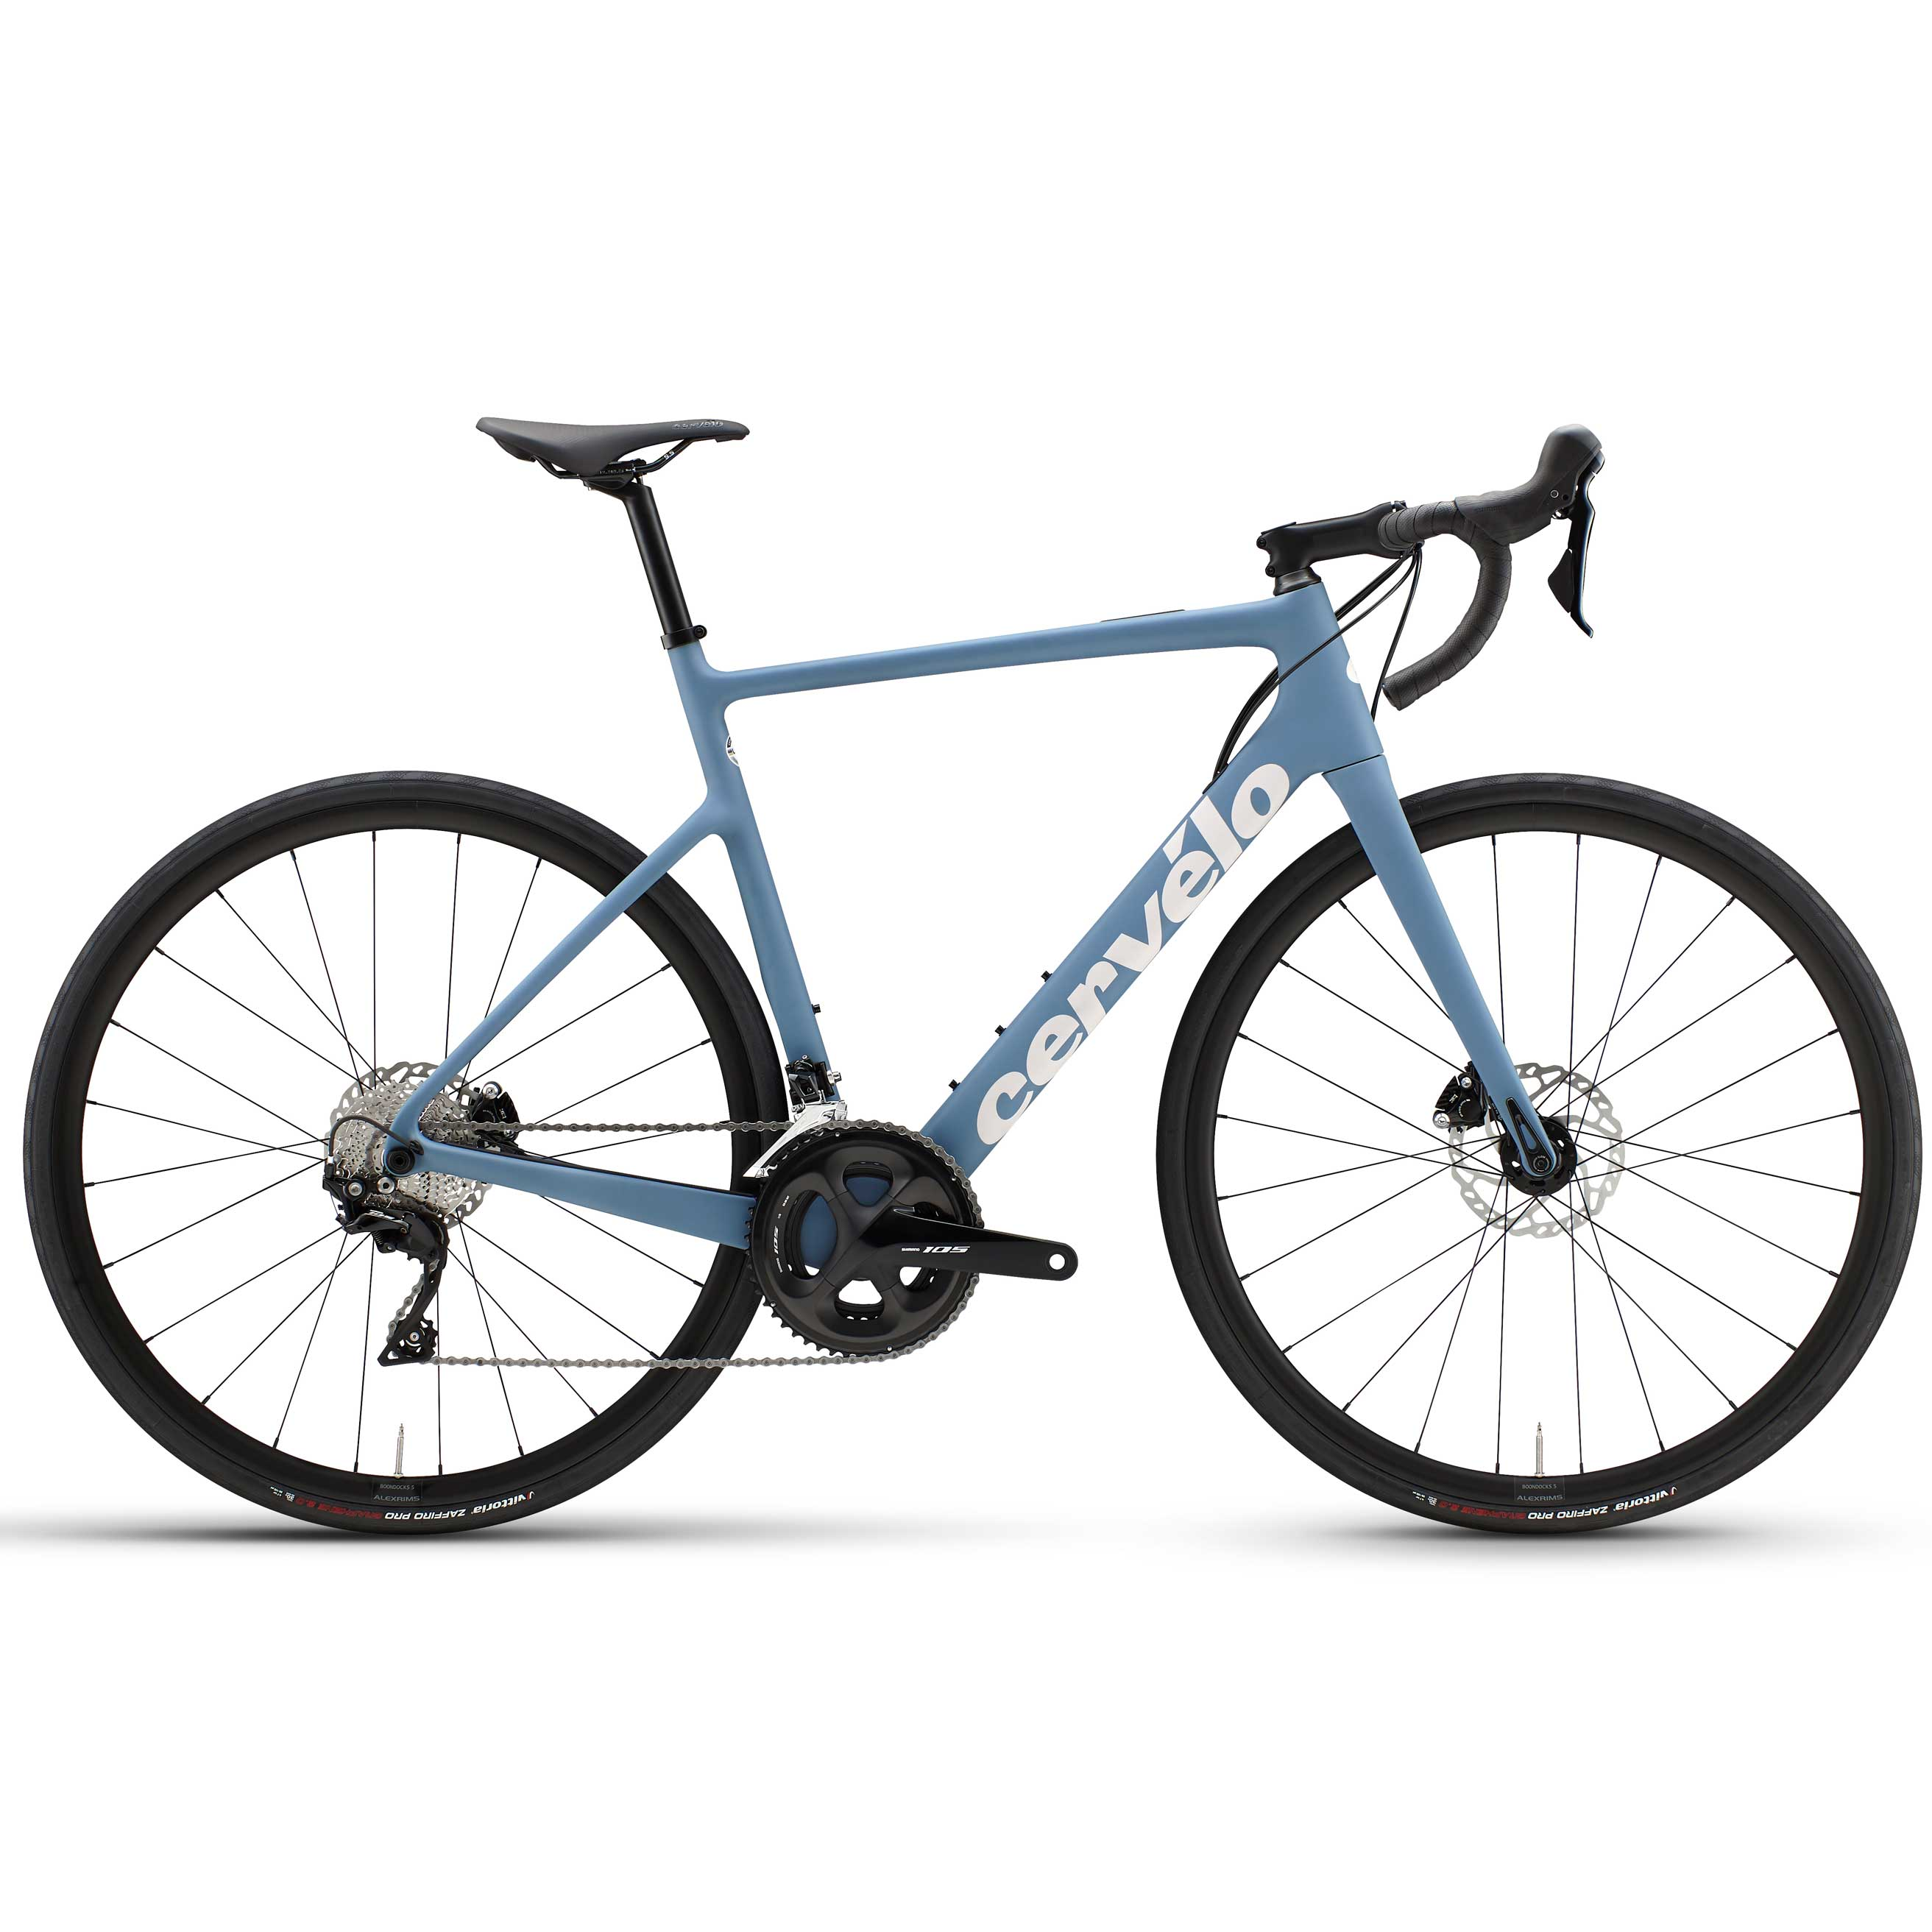 Cervelo Caledonia 105 Road Bike